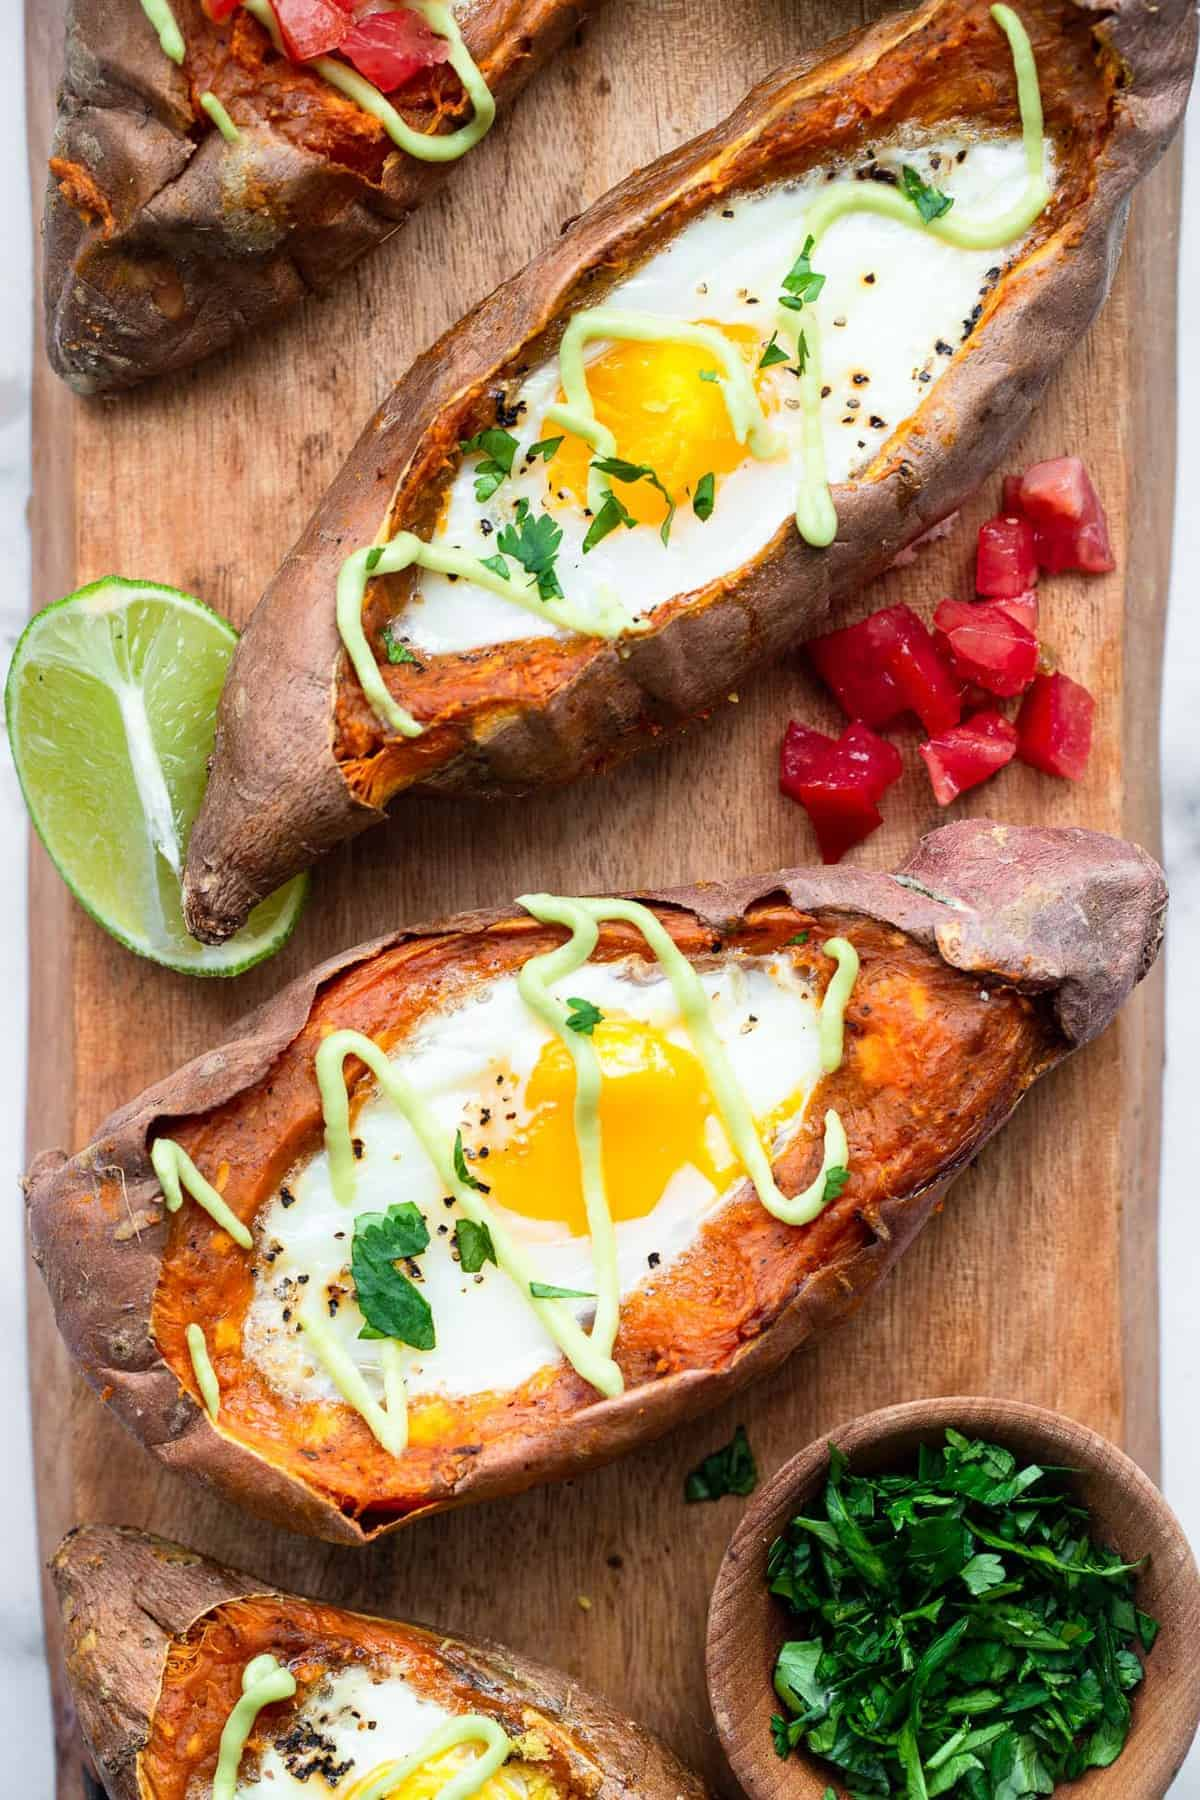 stuffed baked sweet potatoes with eggs and cilantro